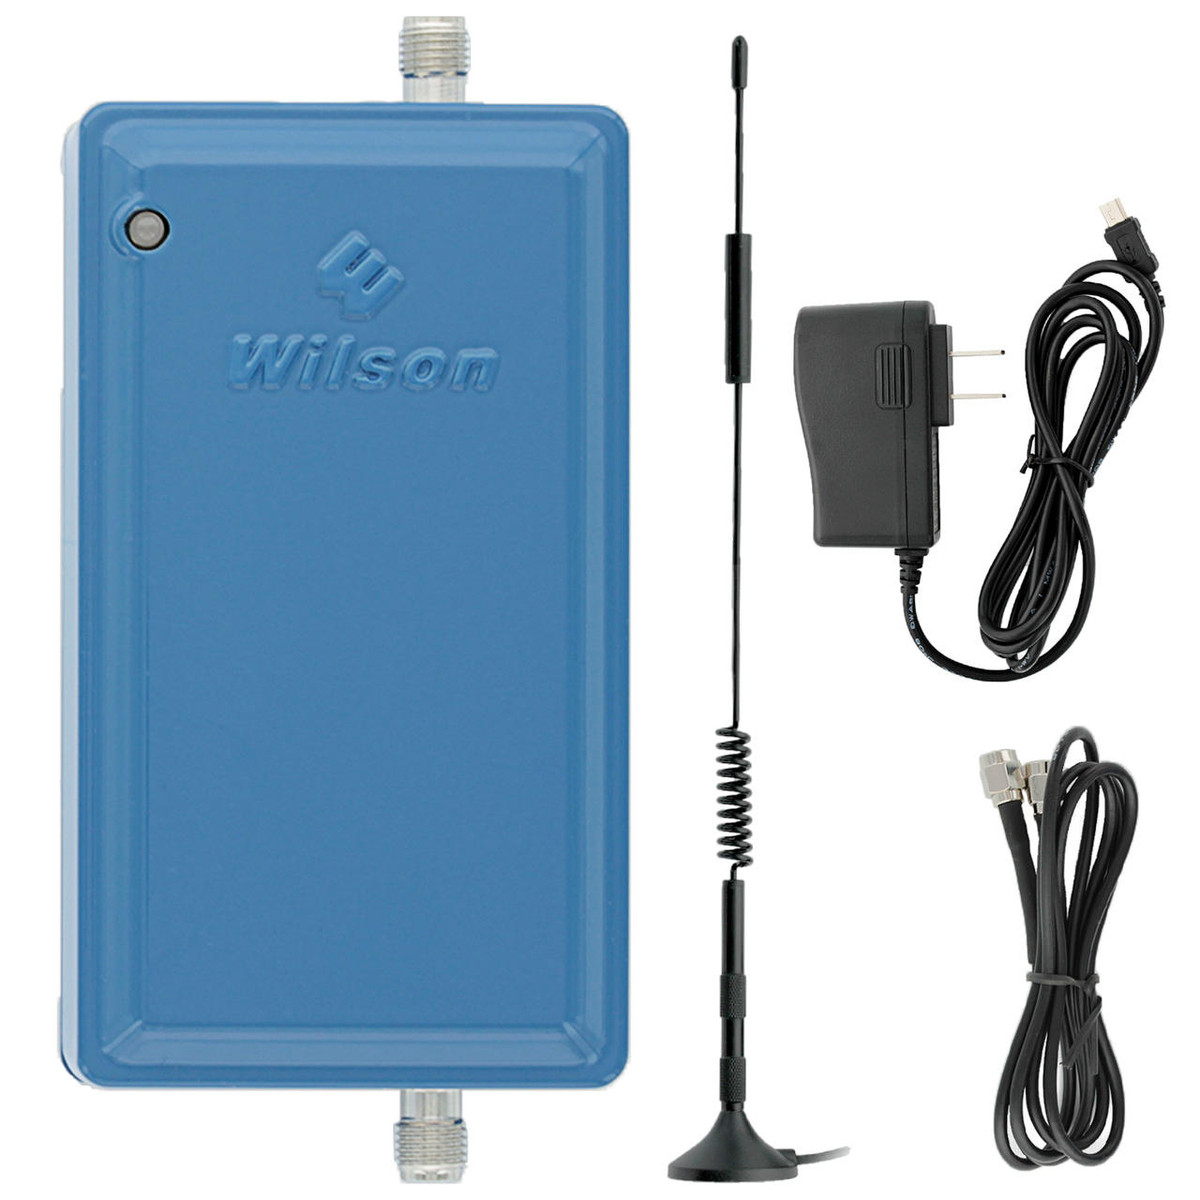 Wilson Electronics Wilson Signal 3G M2M Cell Phone Signal Booster or 460109